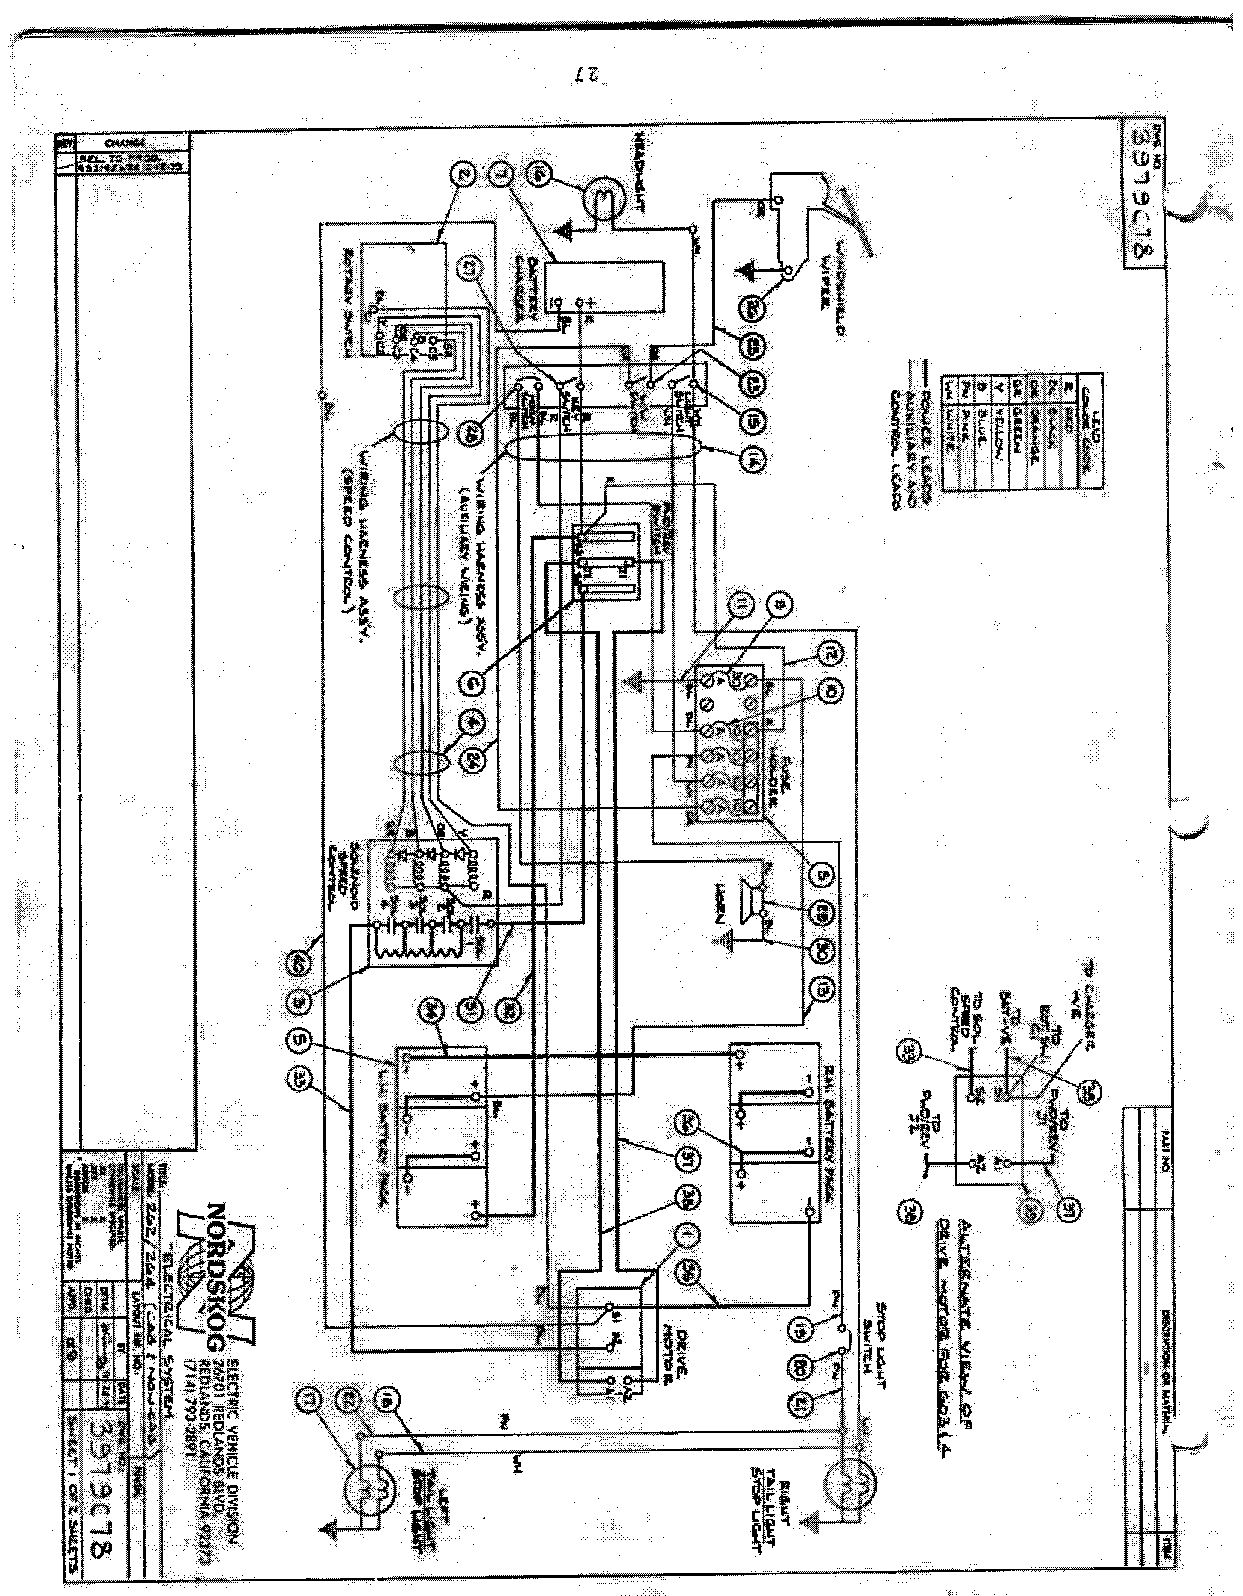 Nordskog262_264 vintagegolfcartparts com westinghouse golf cart wiring diagram at aneh.co